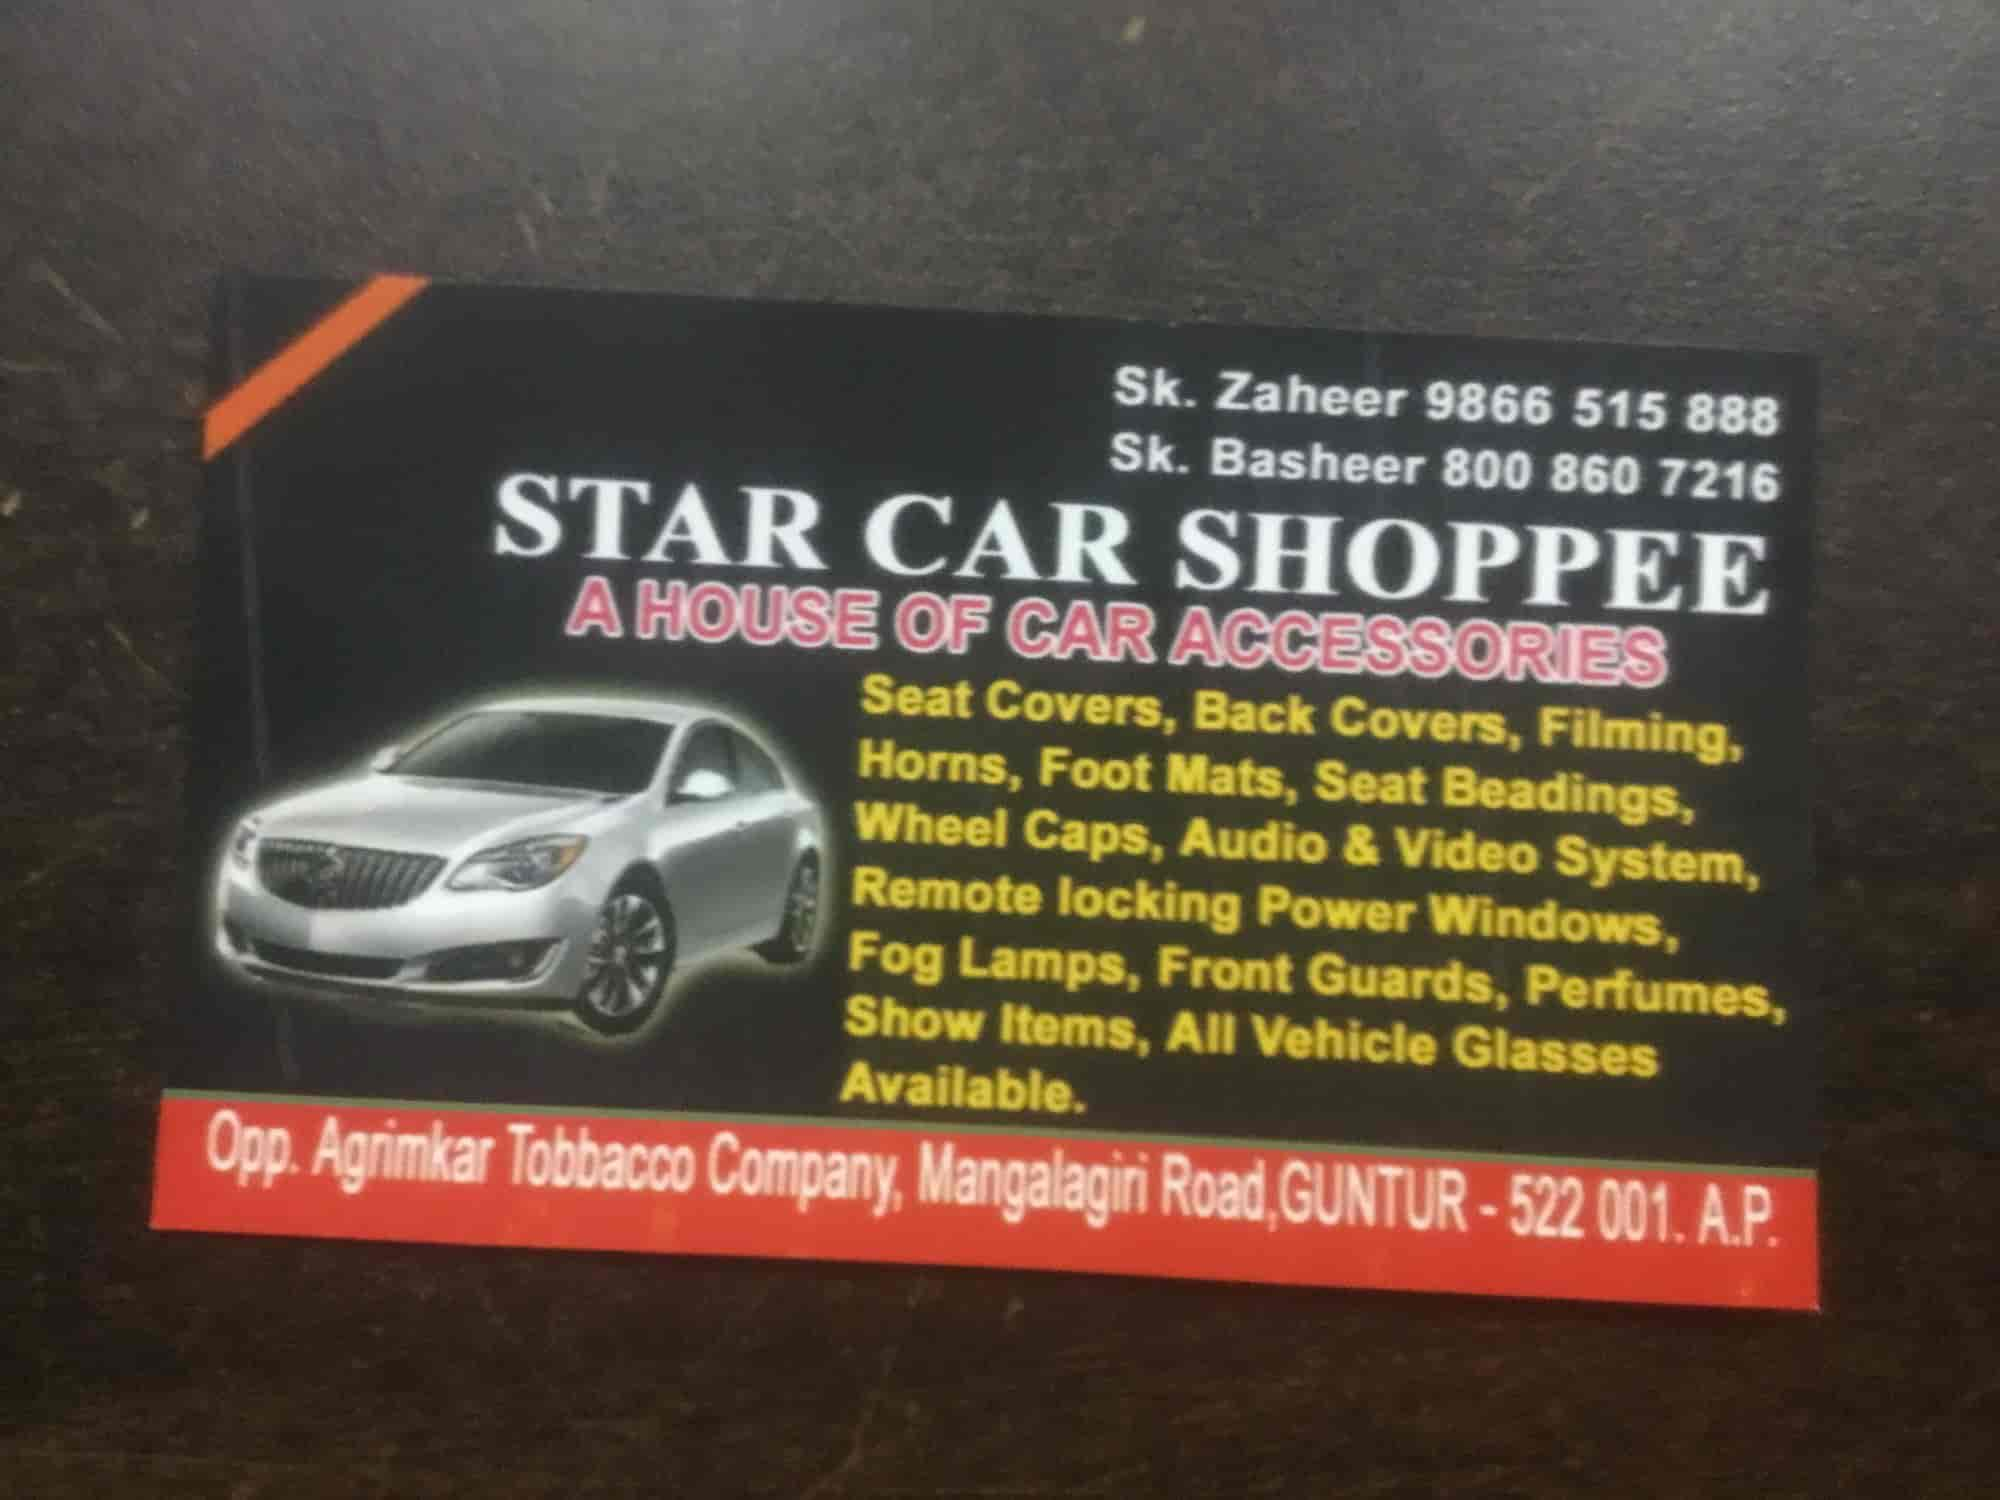 Star Car Shoppee Auto Nagar Shopee Repair Kia Remote Covers Services Maruti Suzuki In Guntur Justdial